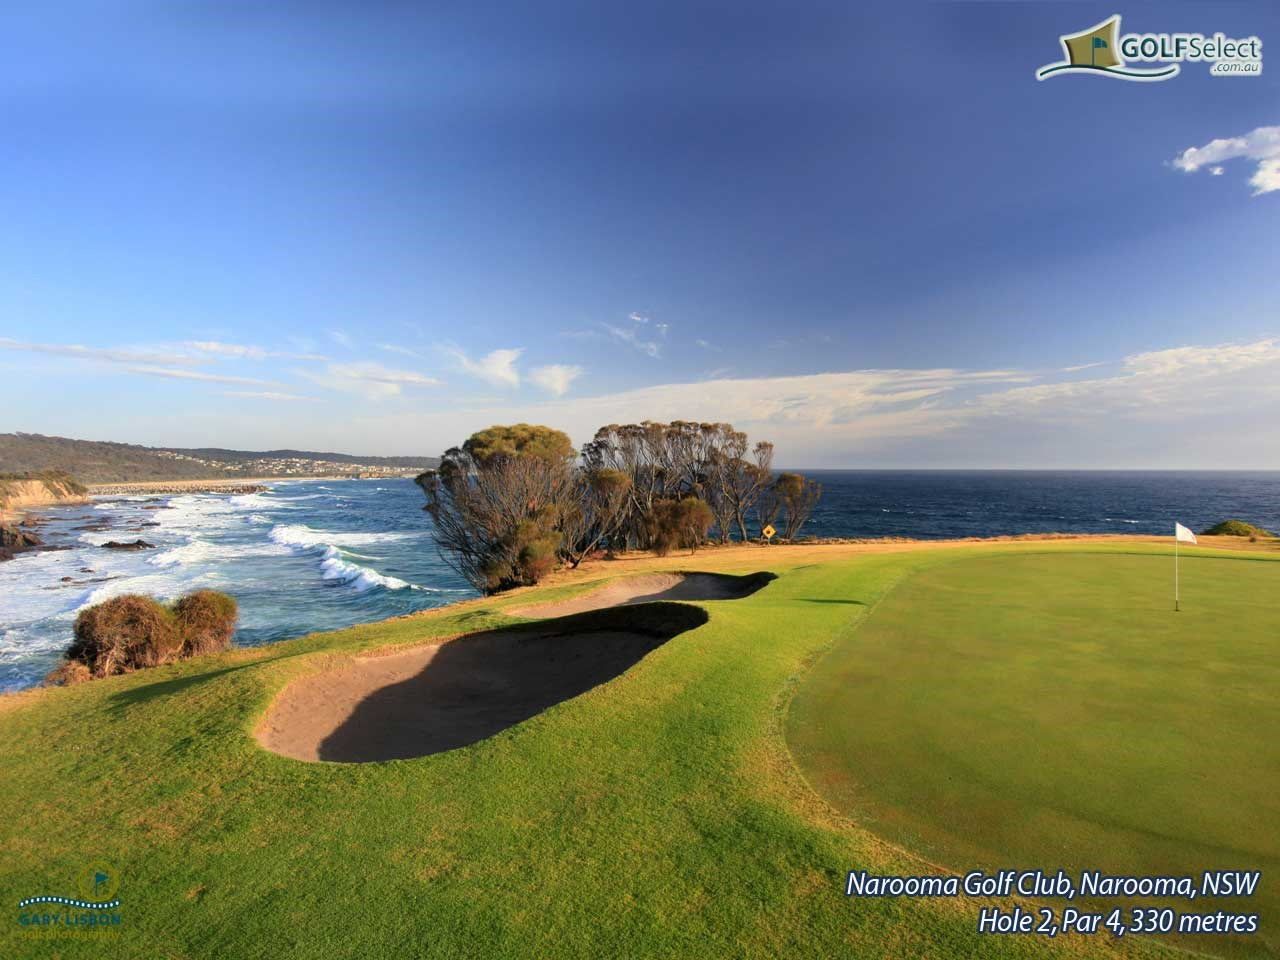 Narooma Golf Club Hole 2, Par 4, 330 metres